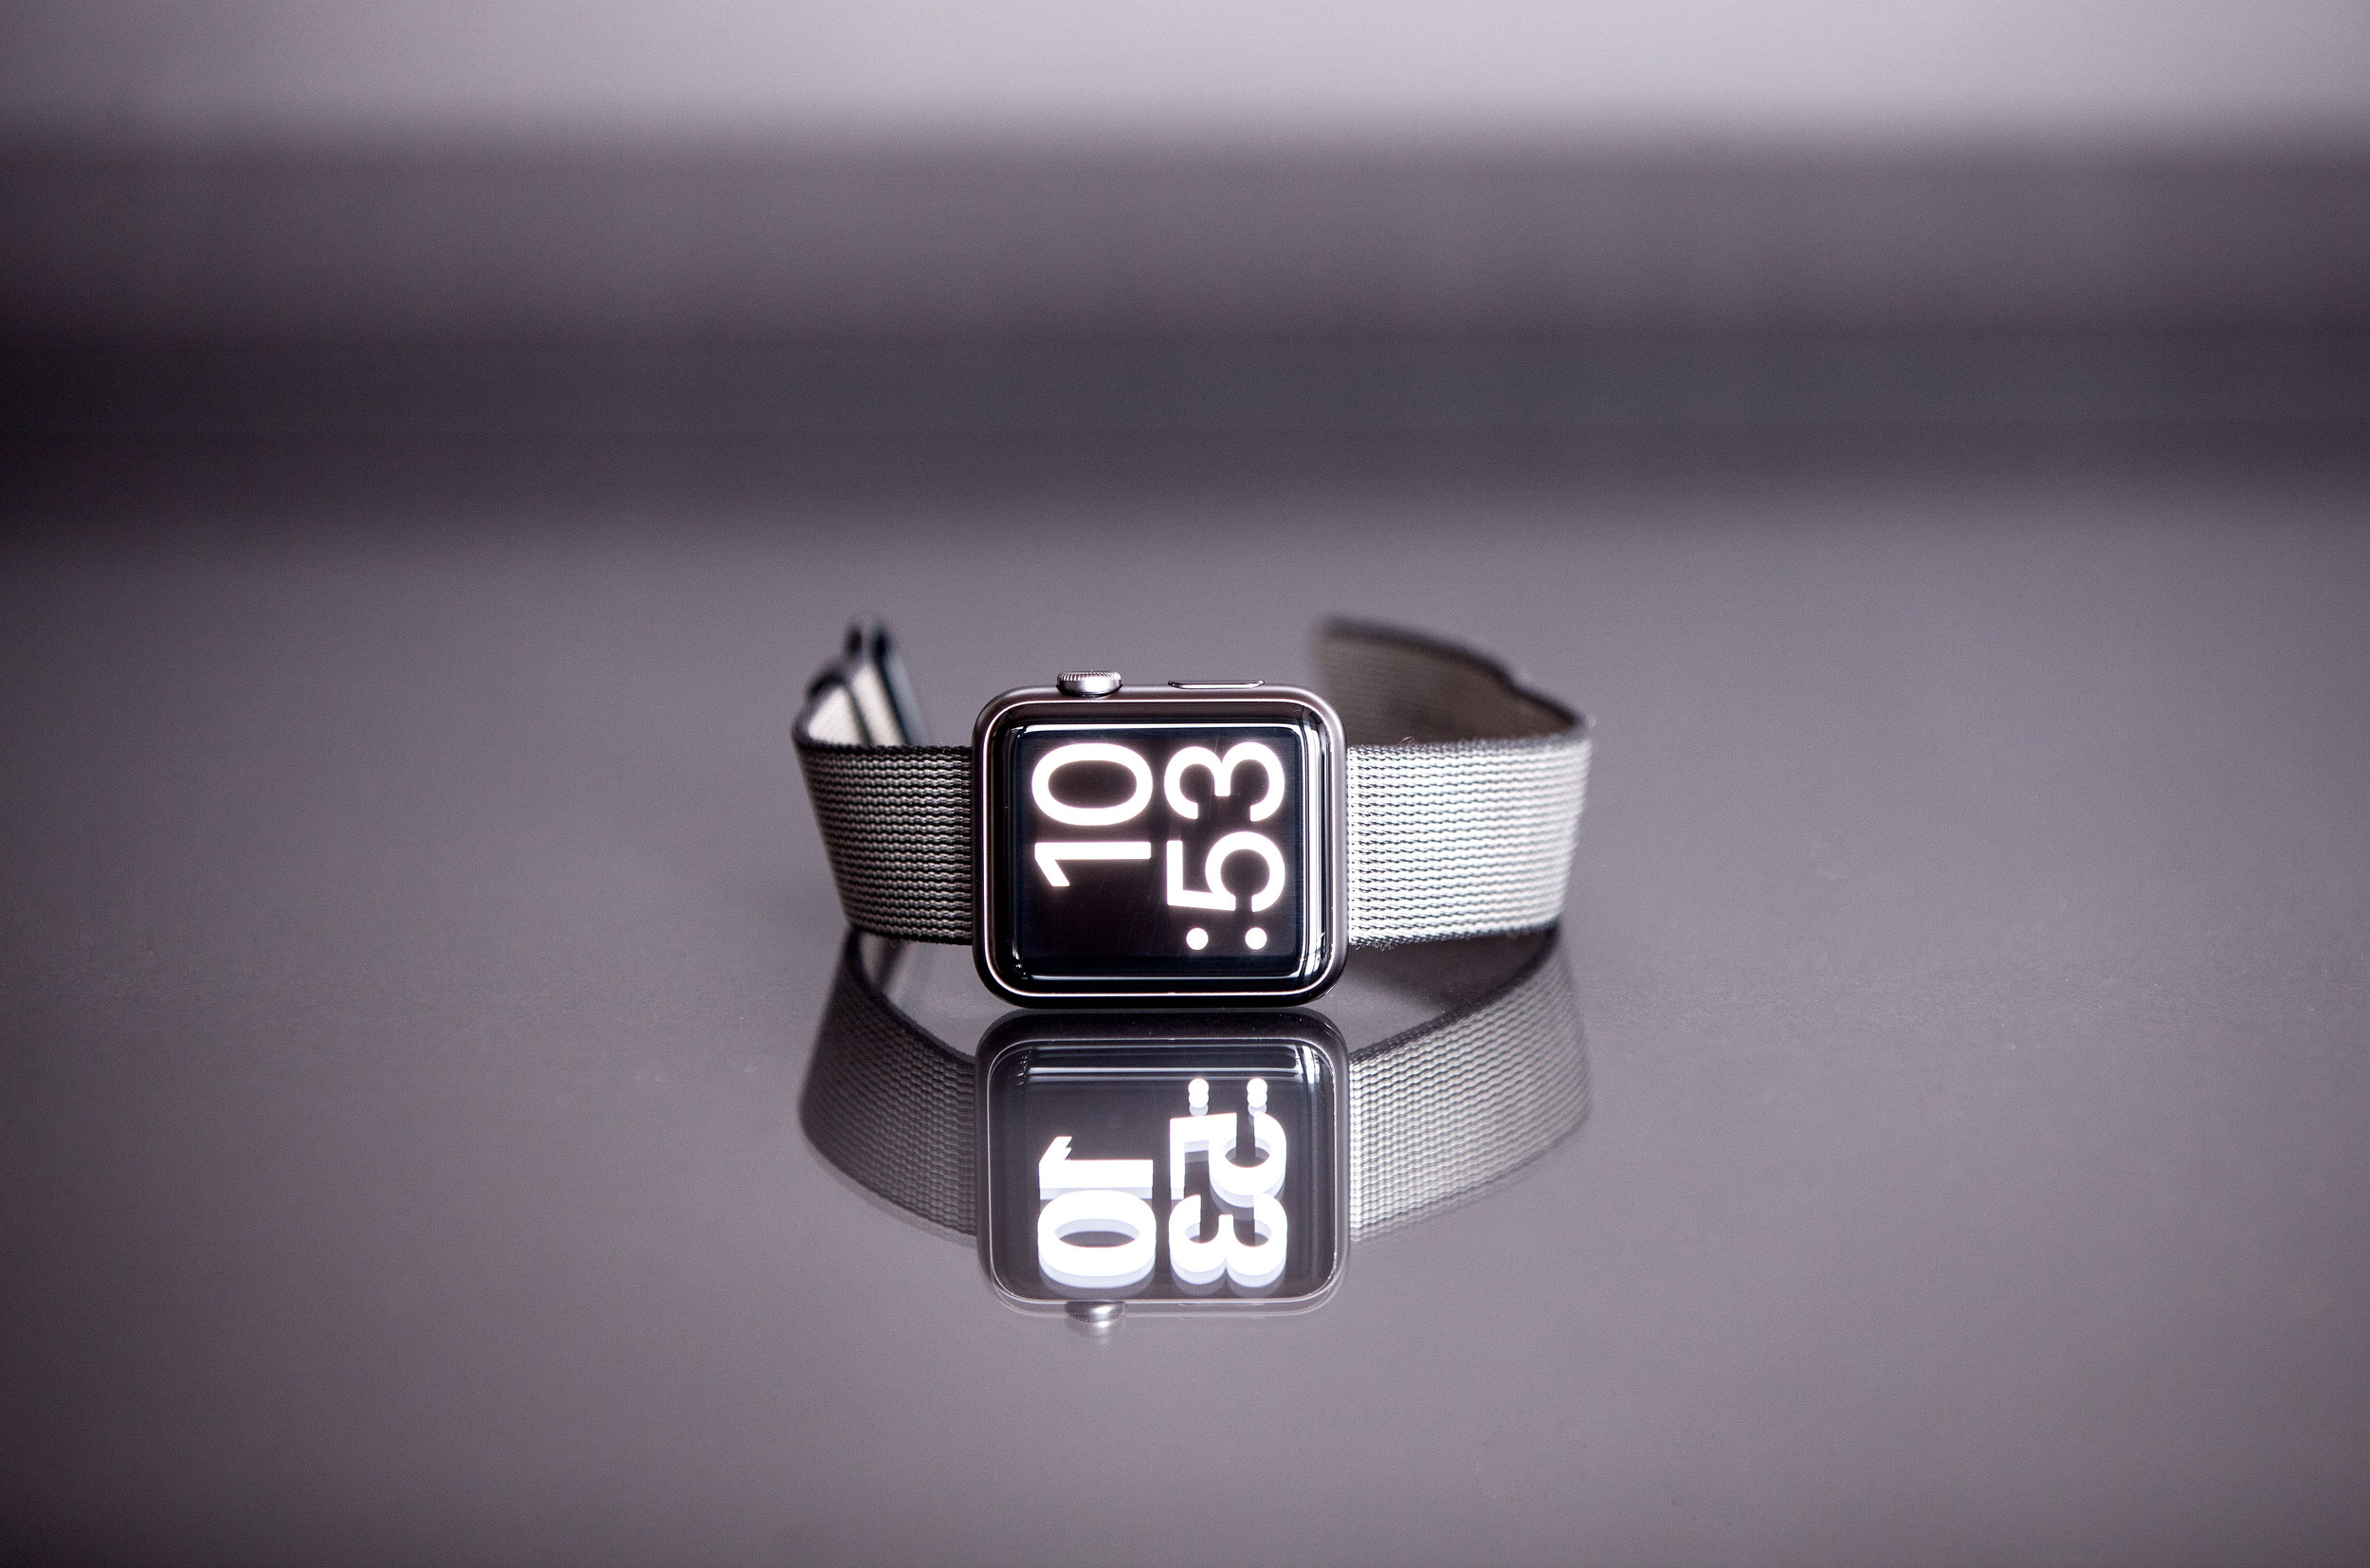 time-clock-Zeit-Uhr-planen-tisch-table-applewatch